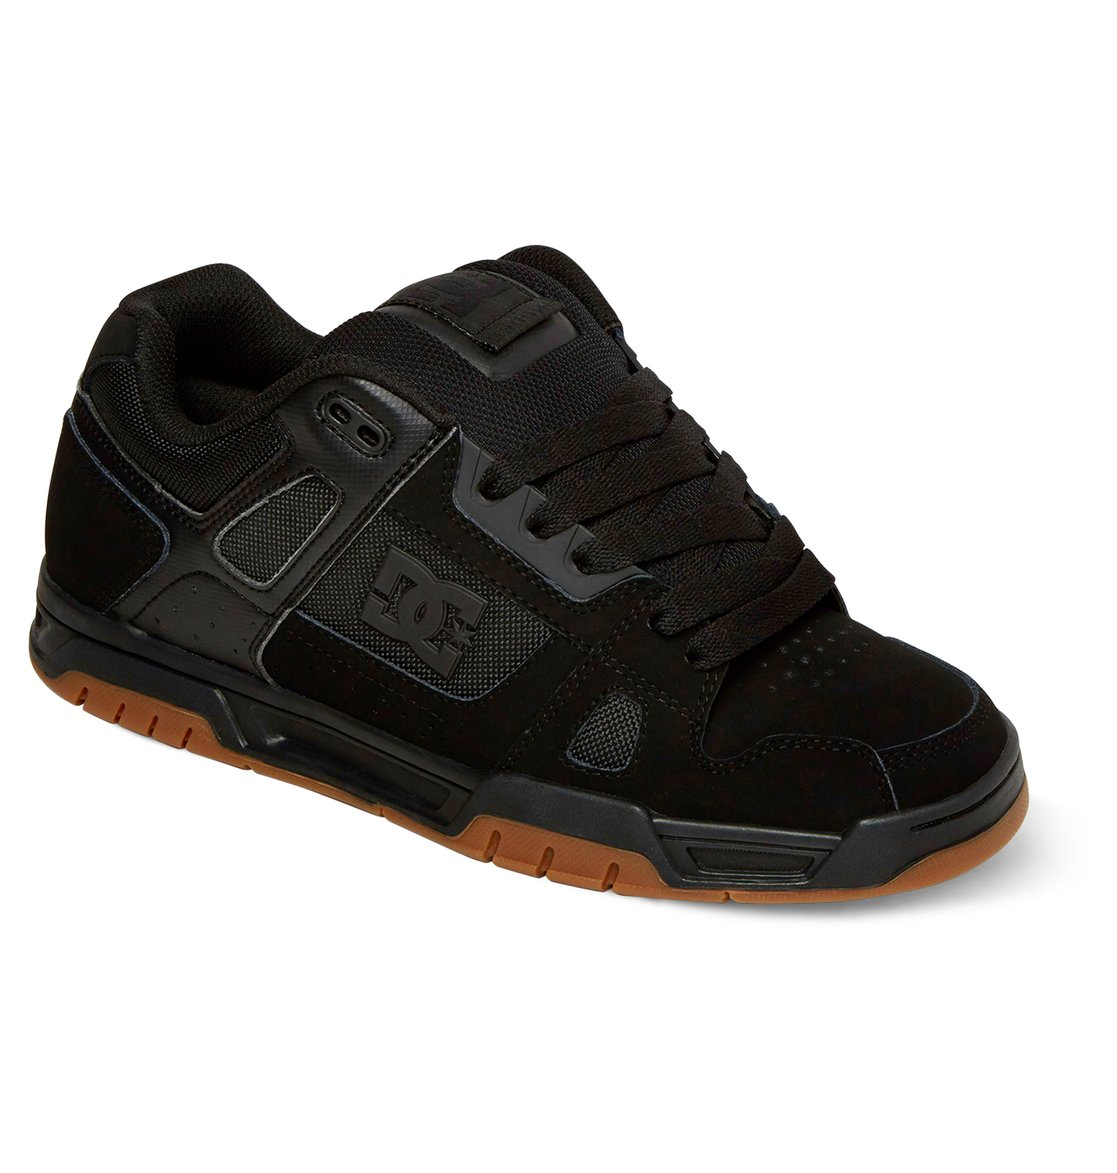 DC classic skate shoe silhouette with padded tongue, durable grip DC Men's Pure High-top Wc Skate Shoe. by DC. $ - $ $ 42 $ 90 00 Prime. FREE Shipping on eligible orders. Some sizes/colors are Prime eligible. out of 5 stars Product Features DC's Trademarked pill .